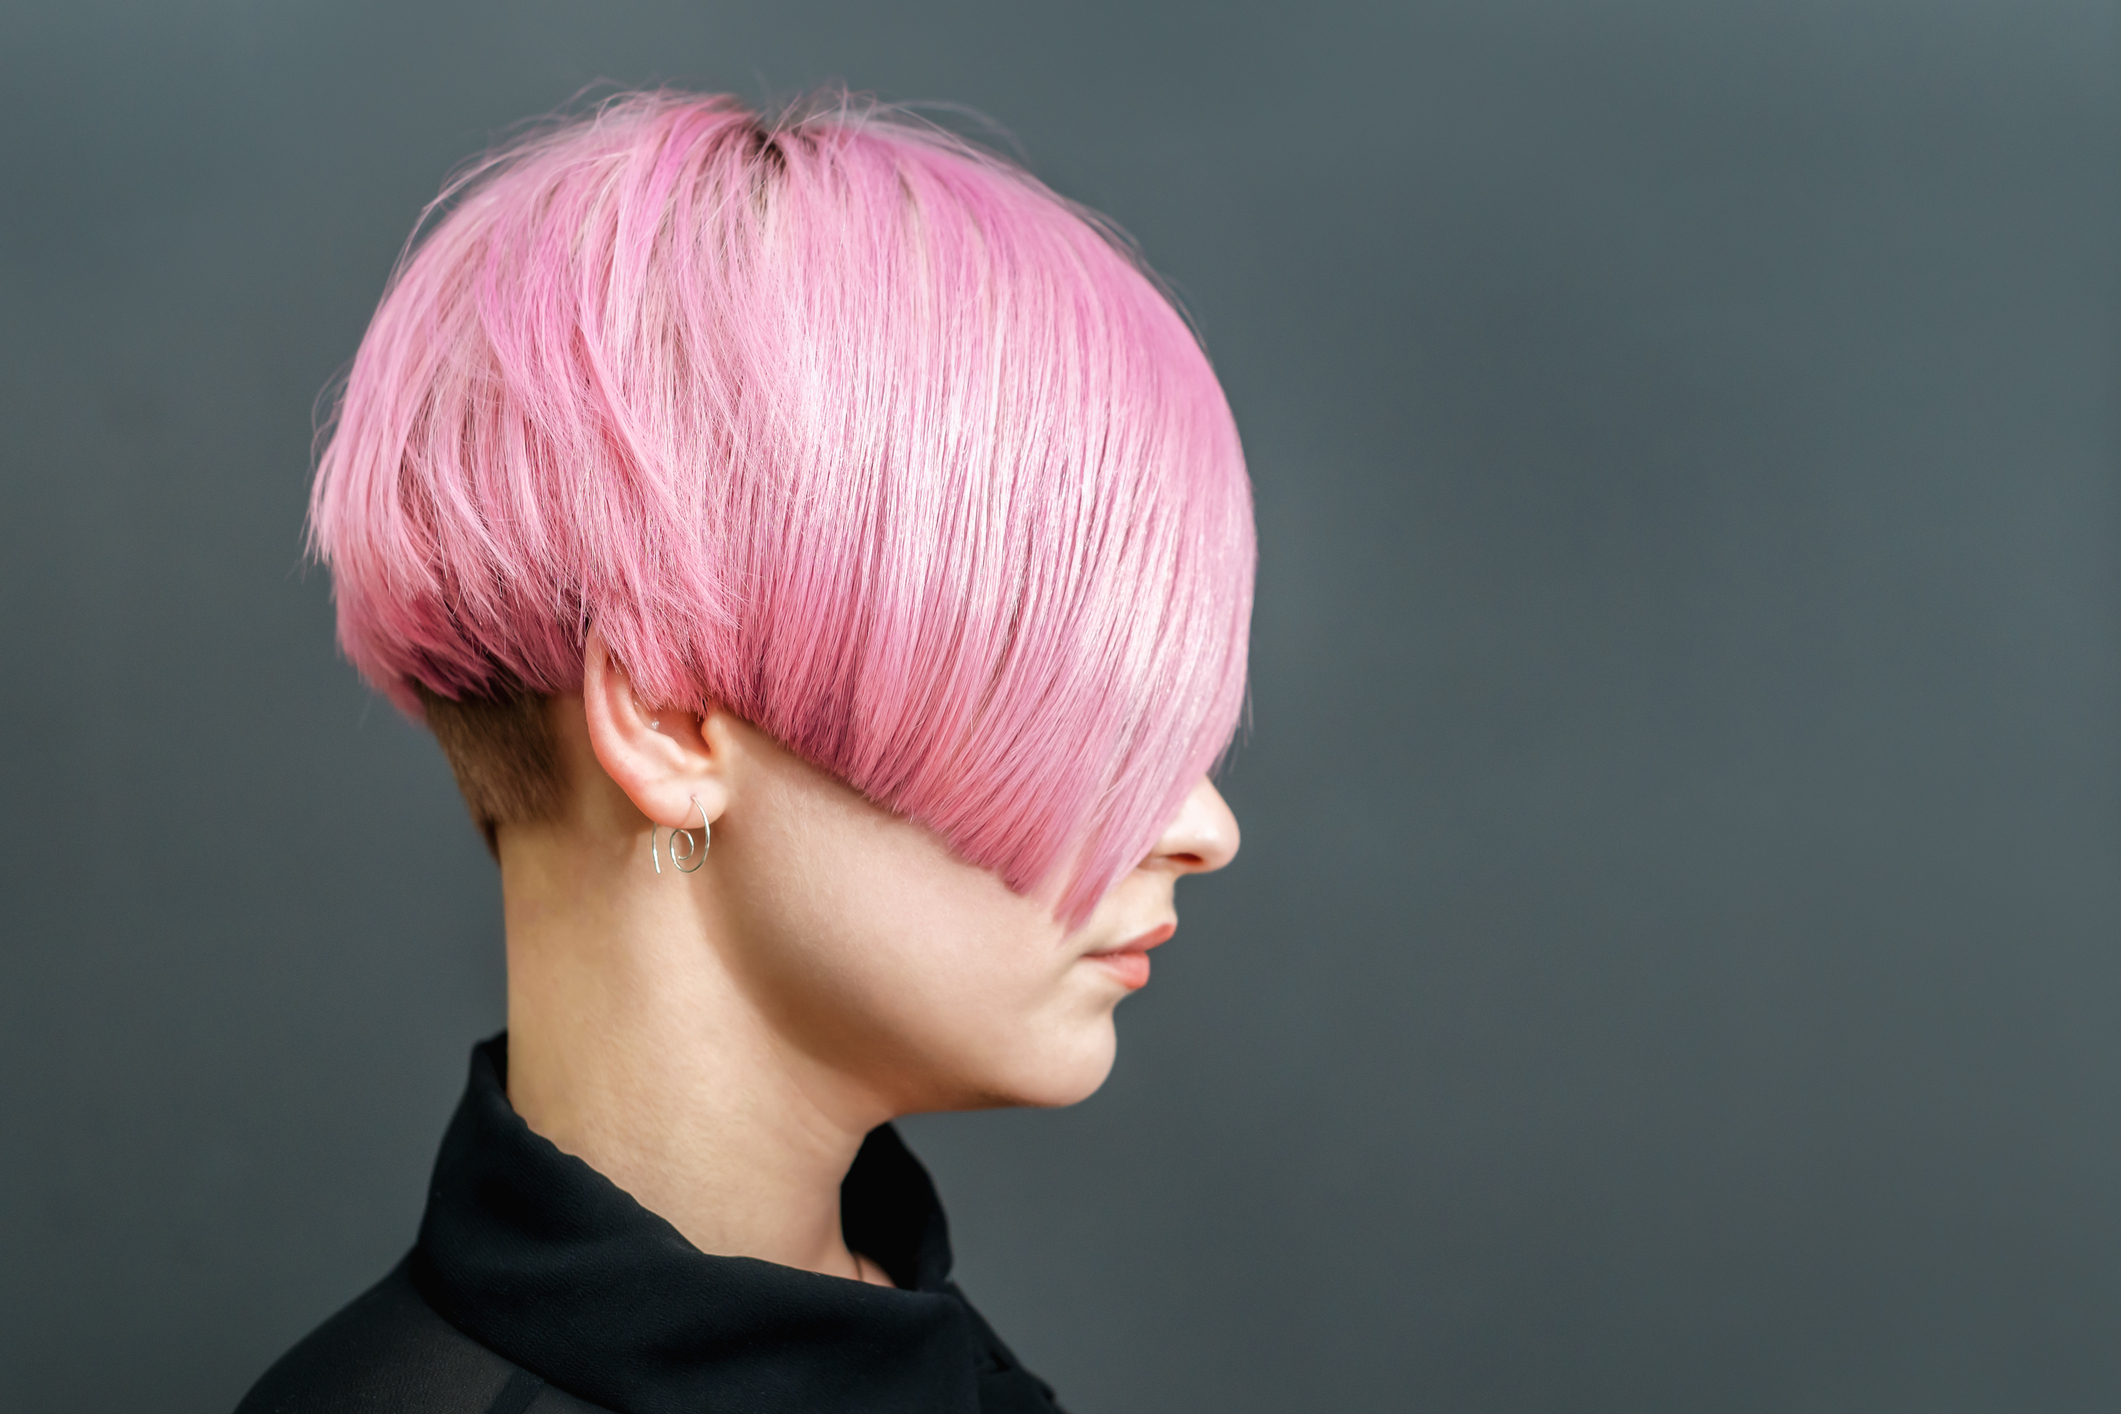 Beautiful model woman with short pink hairstyle on gray background.